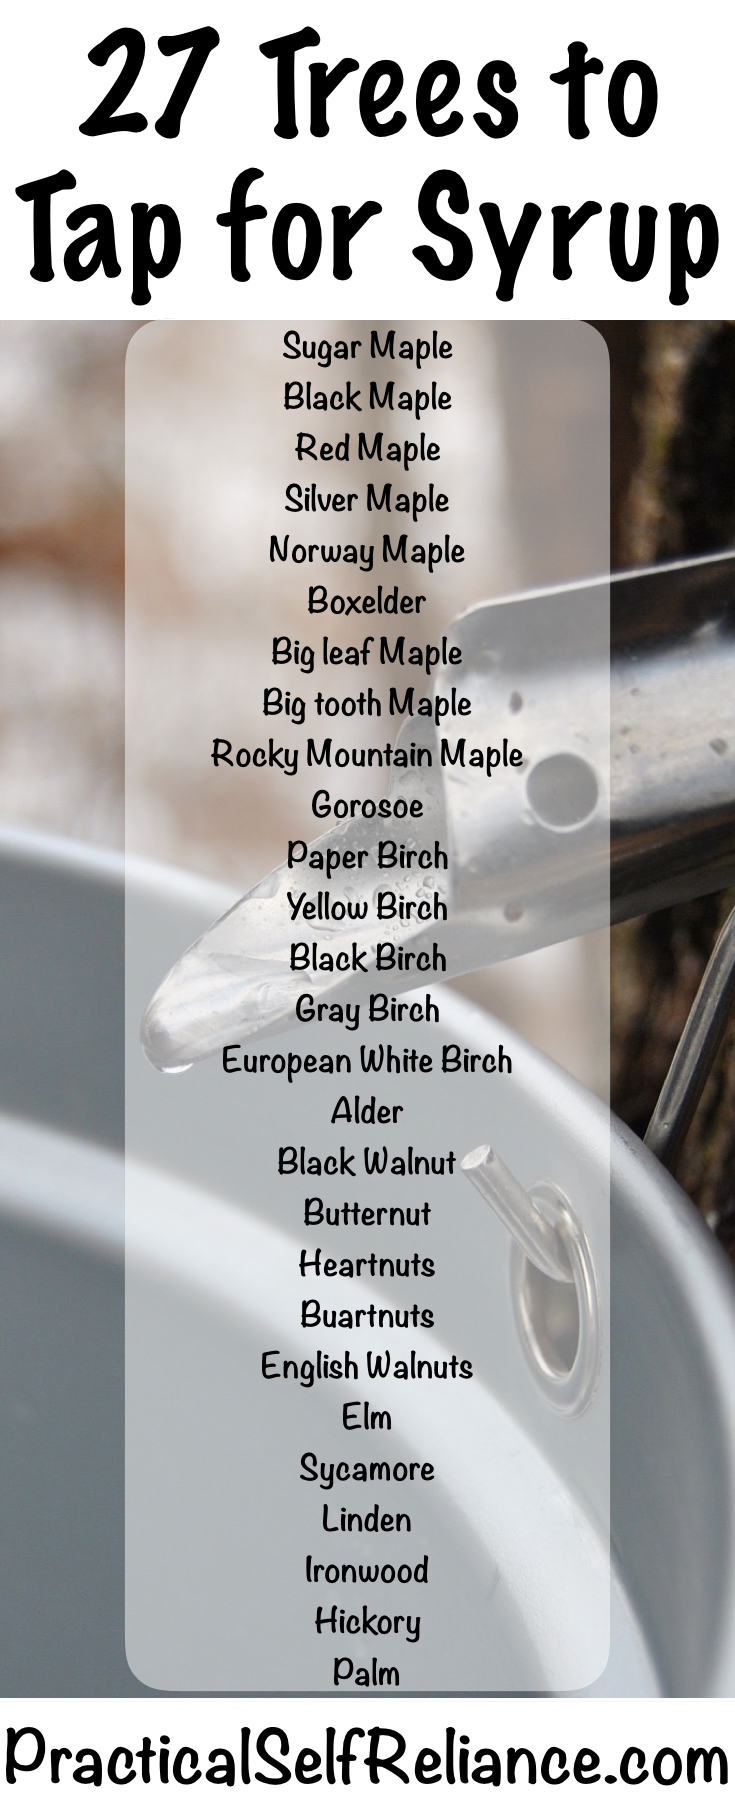 27 Trees You Can Tap for Syrup